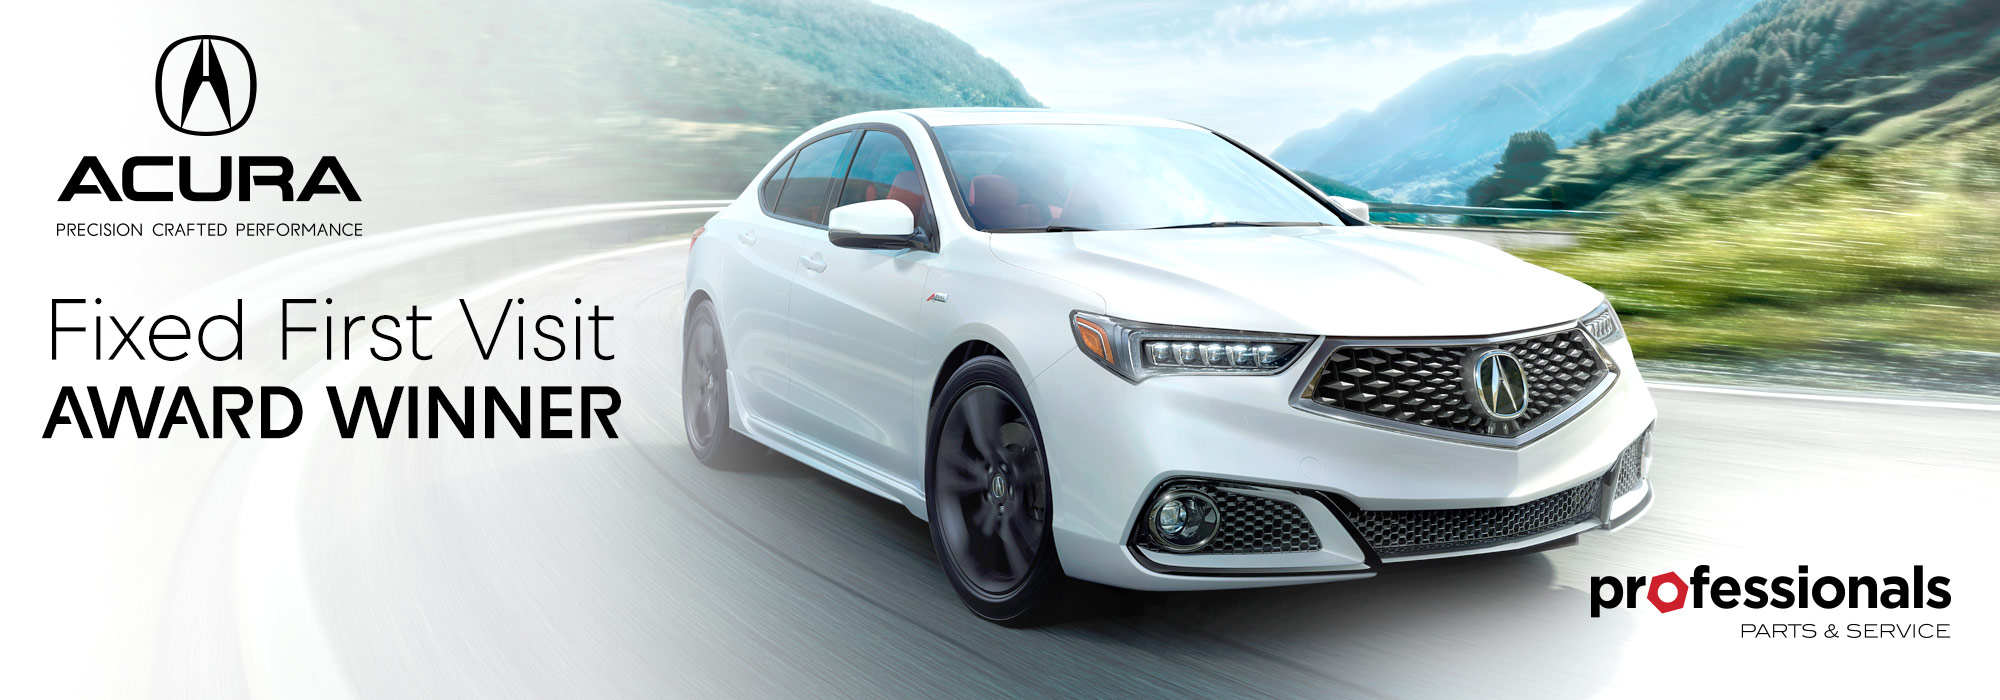 dealer car new west city acura htm in ellicott norris rlx md dealers used baltimore